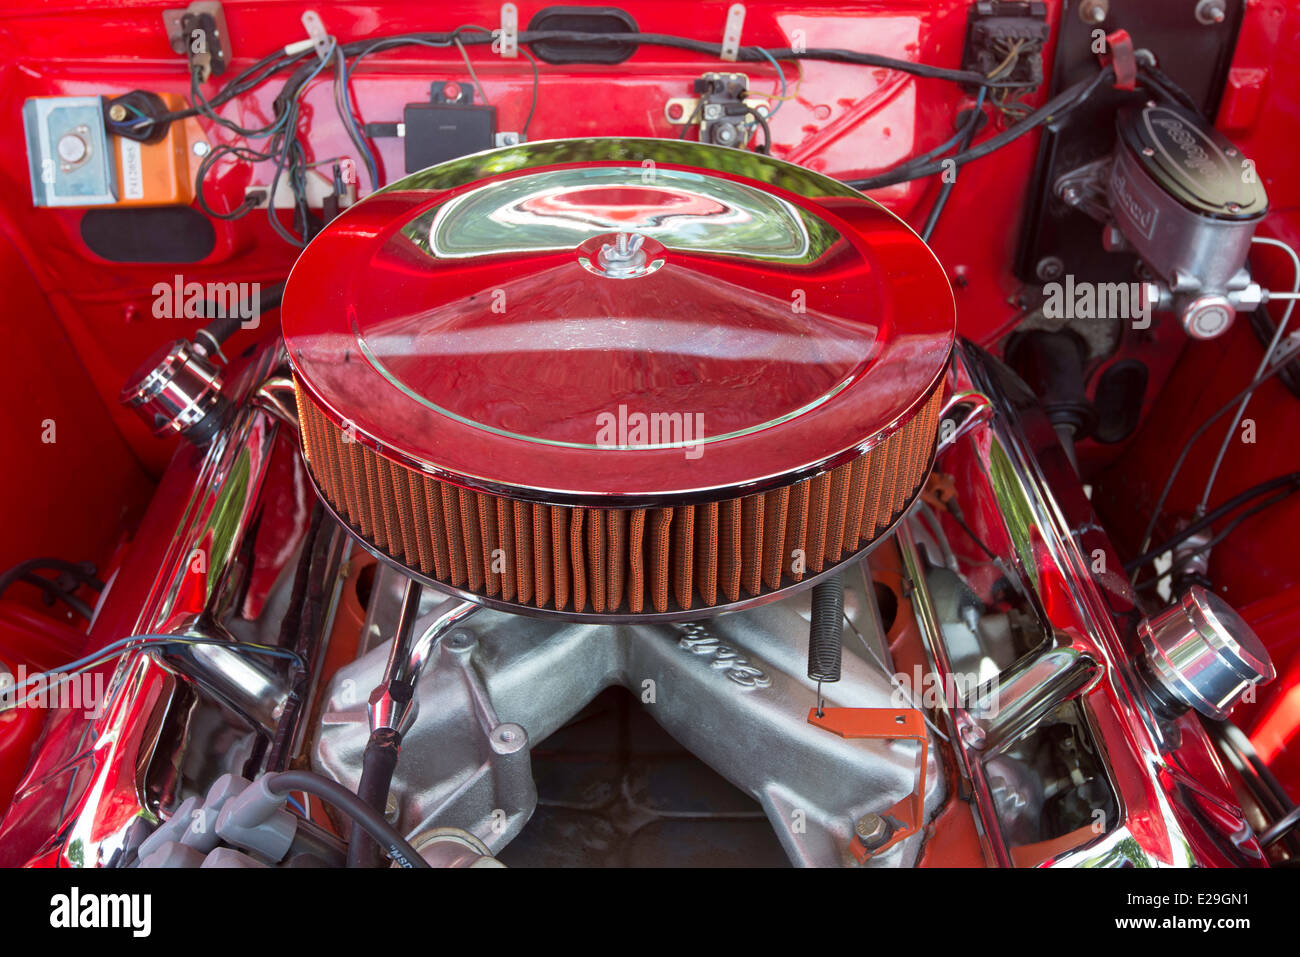 Red  engine compartment and air filters - Stock Image